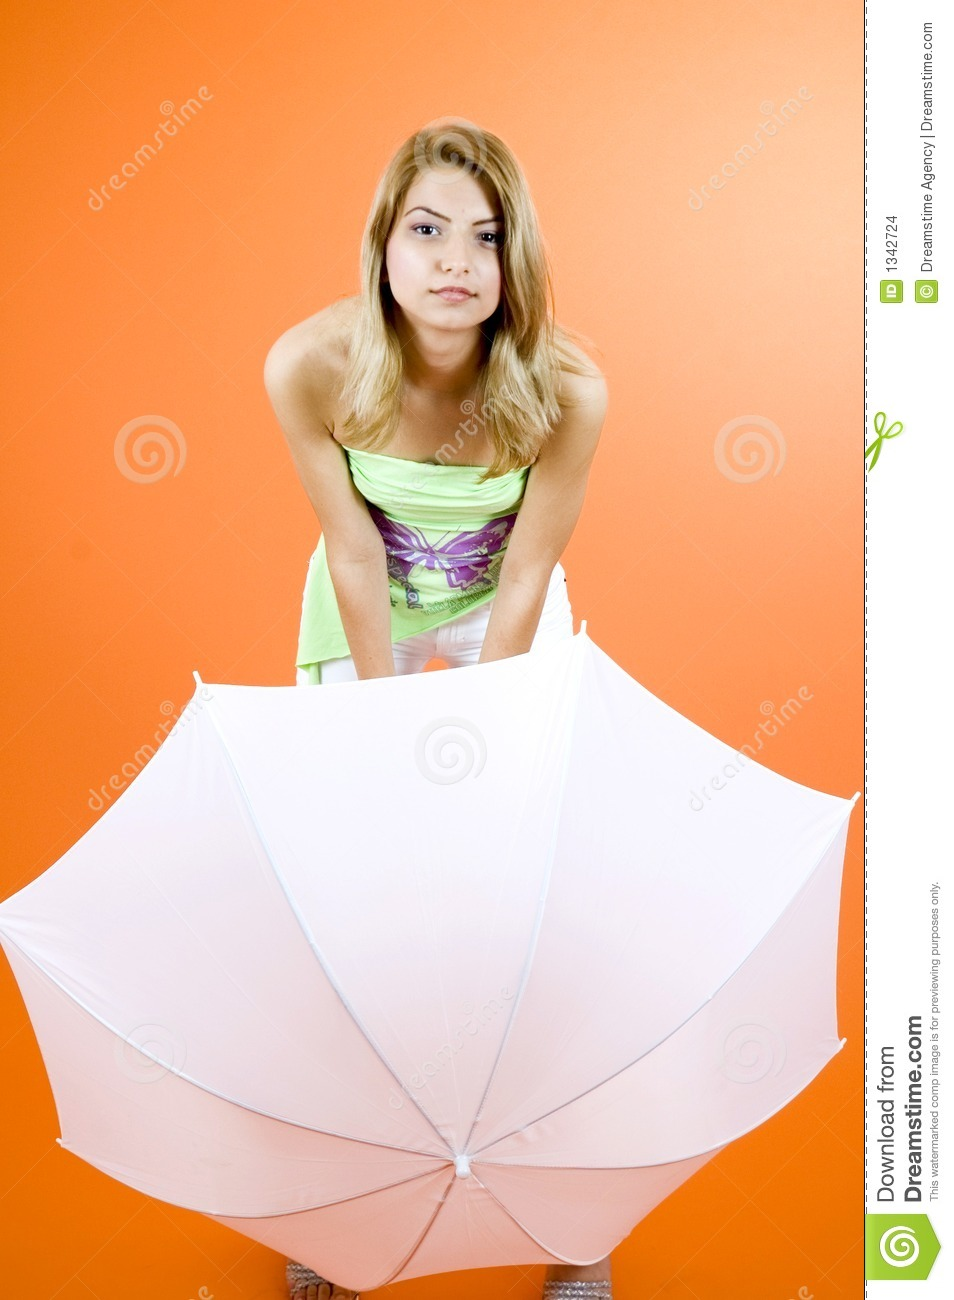 Blond with umbrella